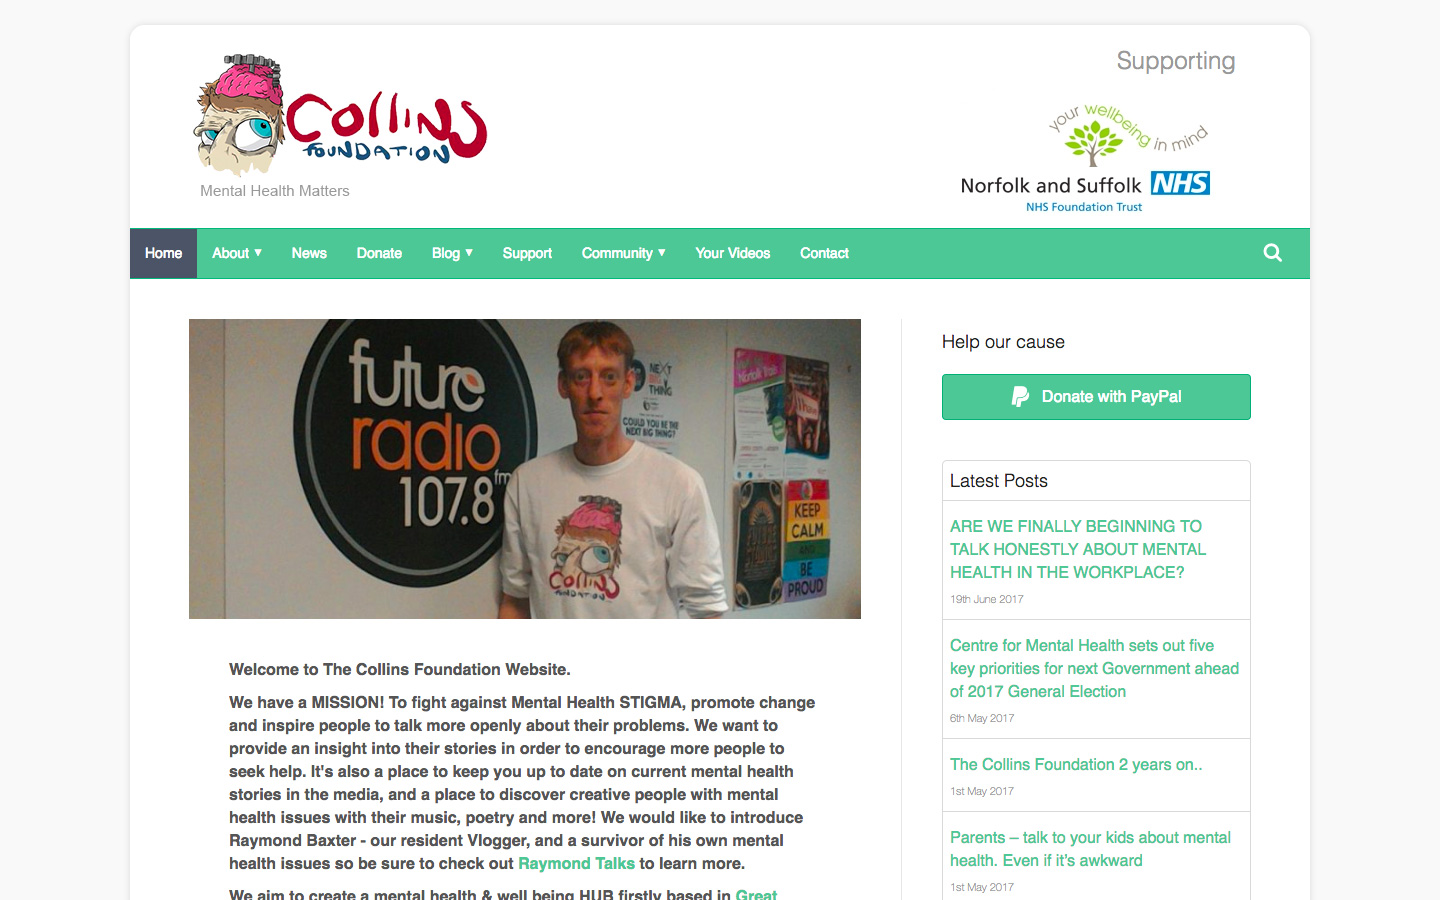 Web Hosting & Design for Local Charity The Collins Foundation